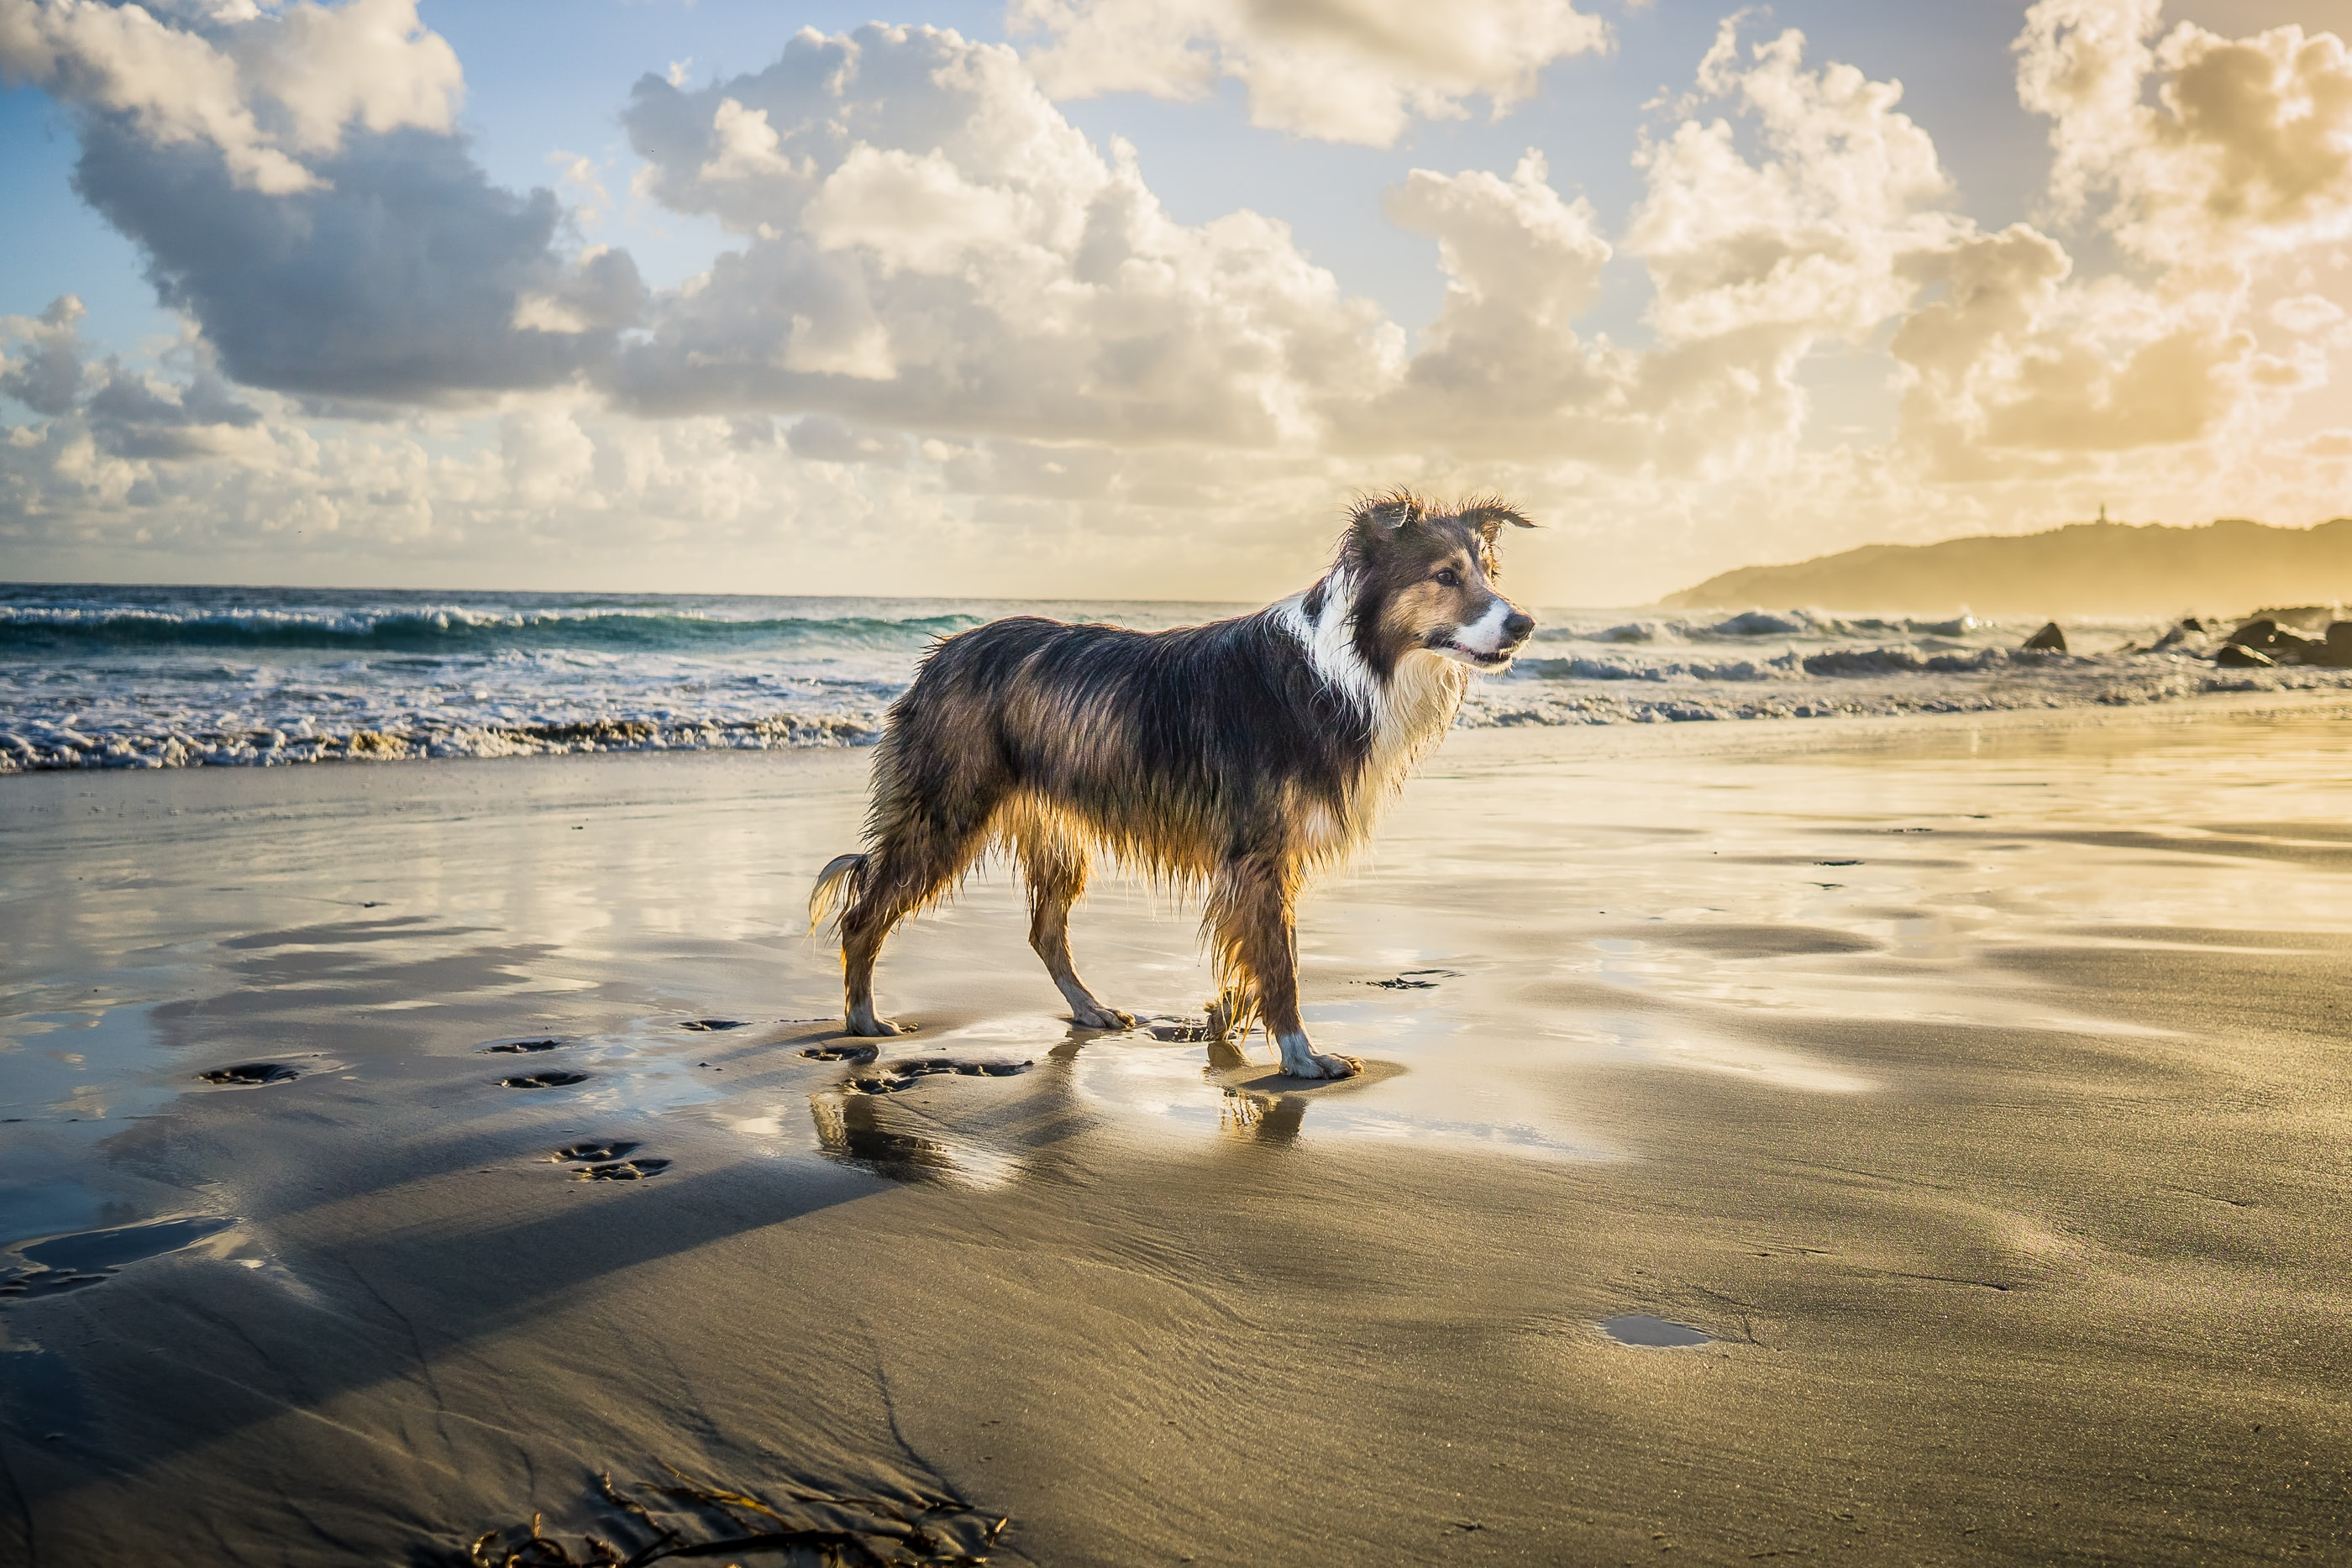 HDR of a Border collie emerging from the water leaving footprints in the sand under a bright, partially cloudy sky